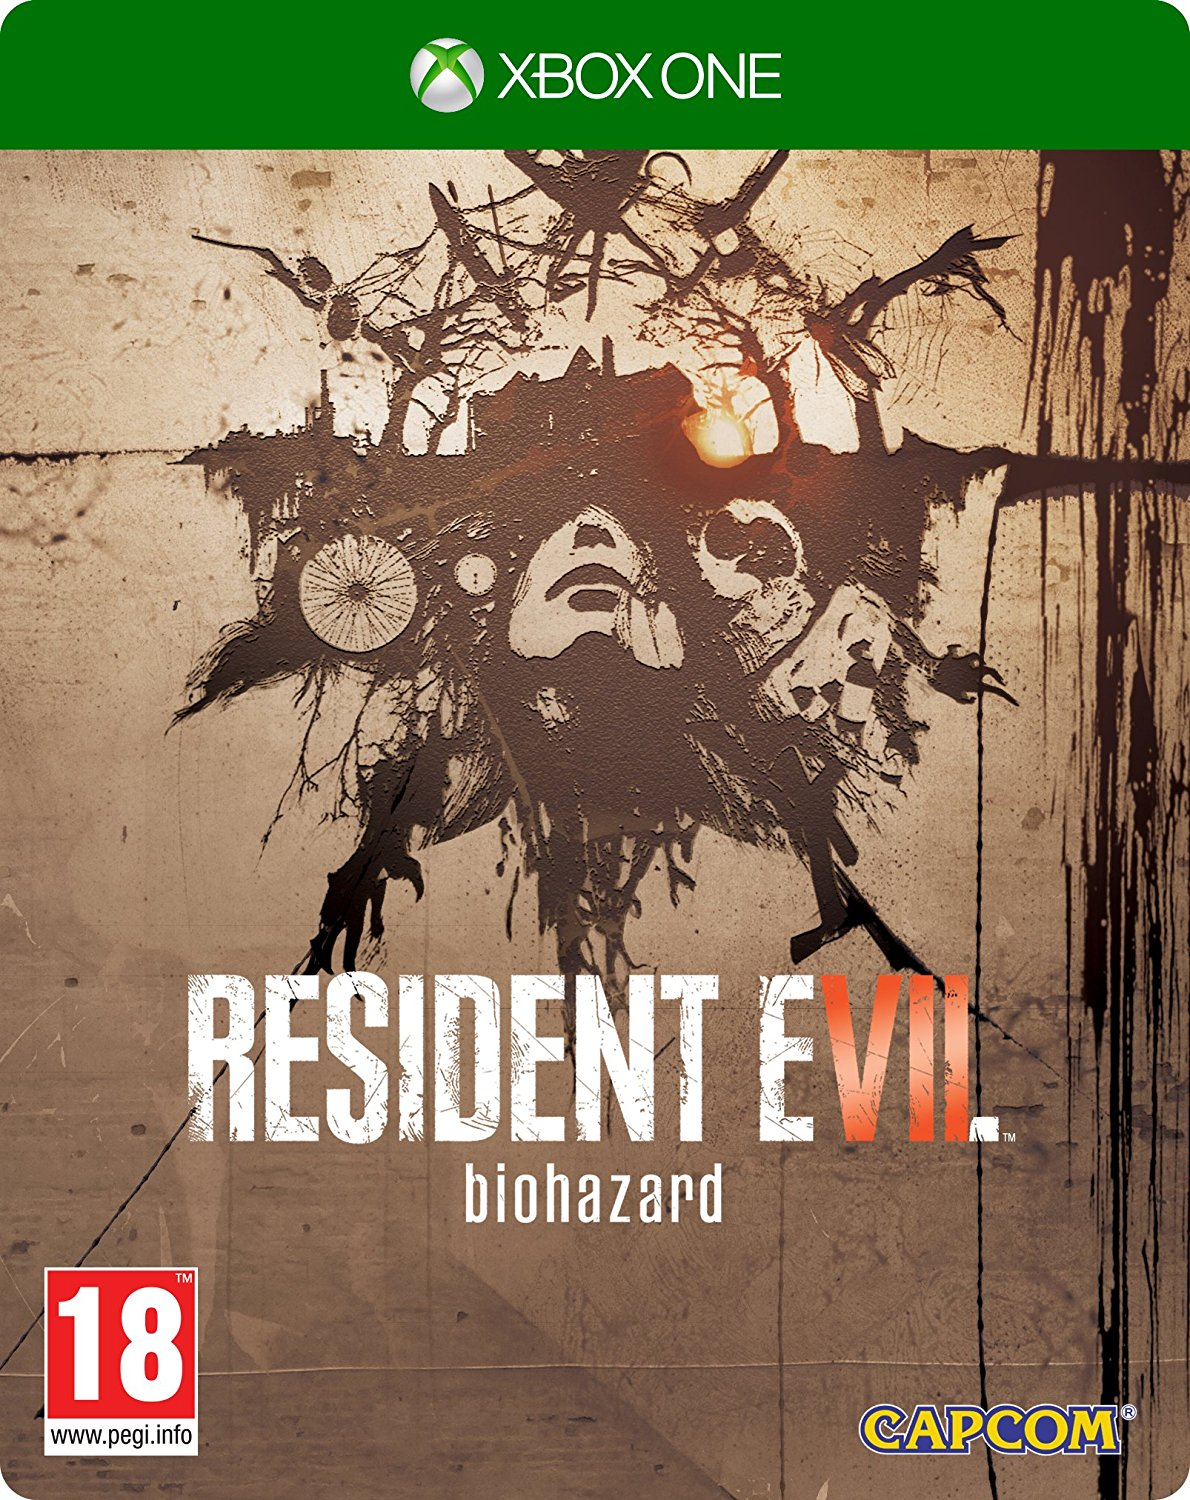 Book Cover Illustration Xbox One : Resident evil biohazard steelbook edition xbox one